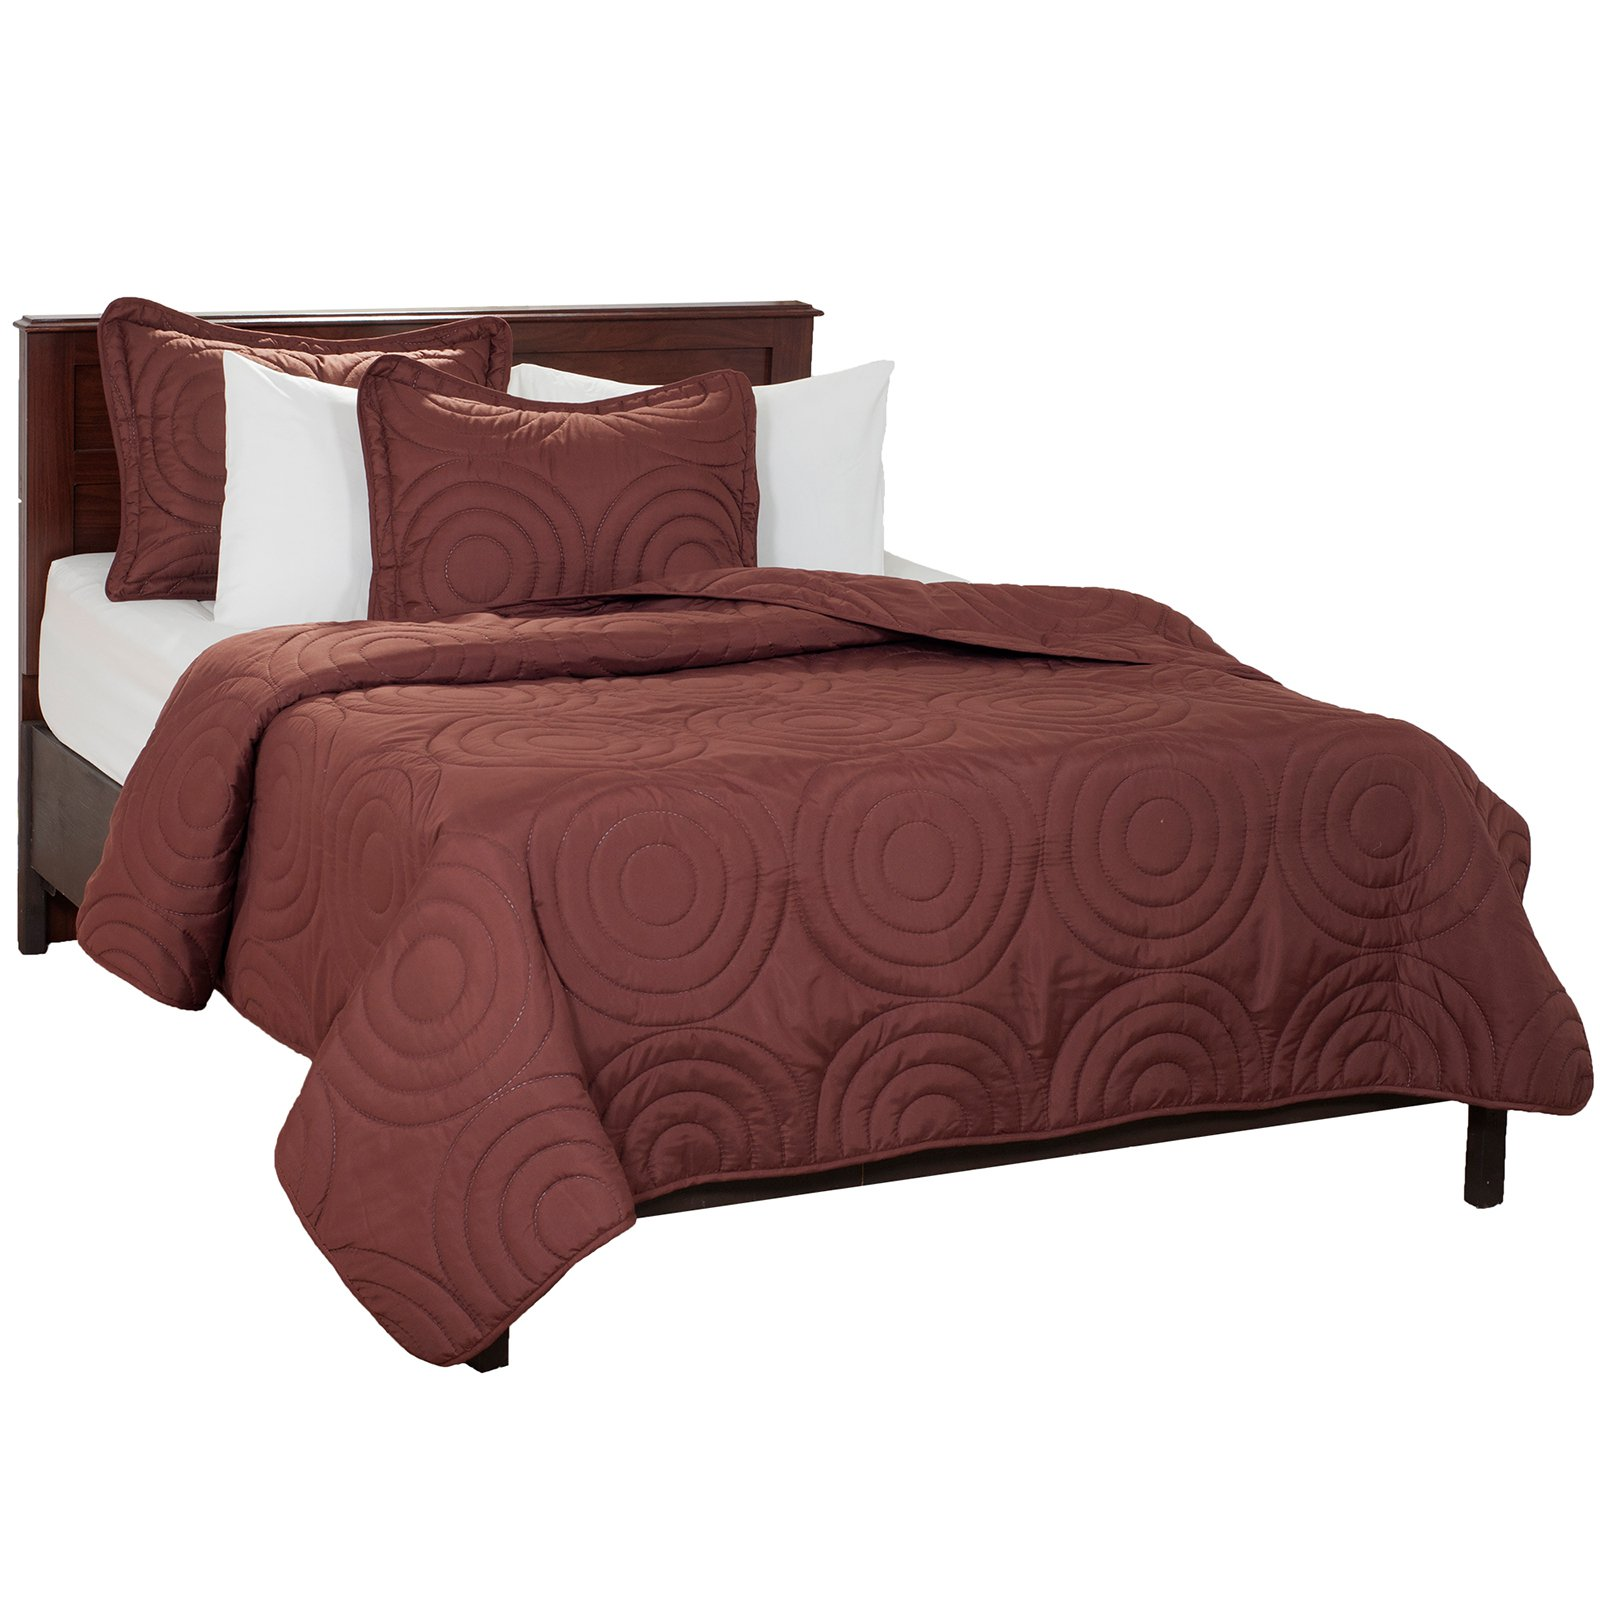 Solid Embossed 3-Piece Quilt Set by Lavish Home